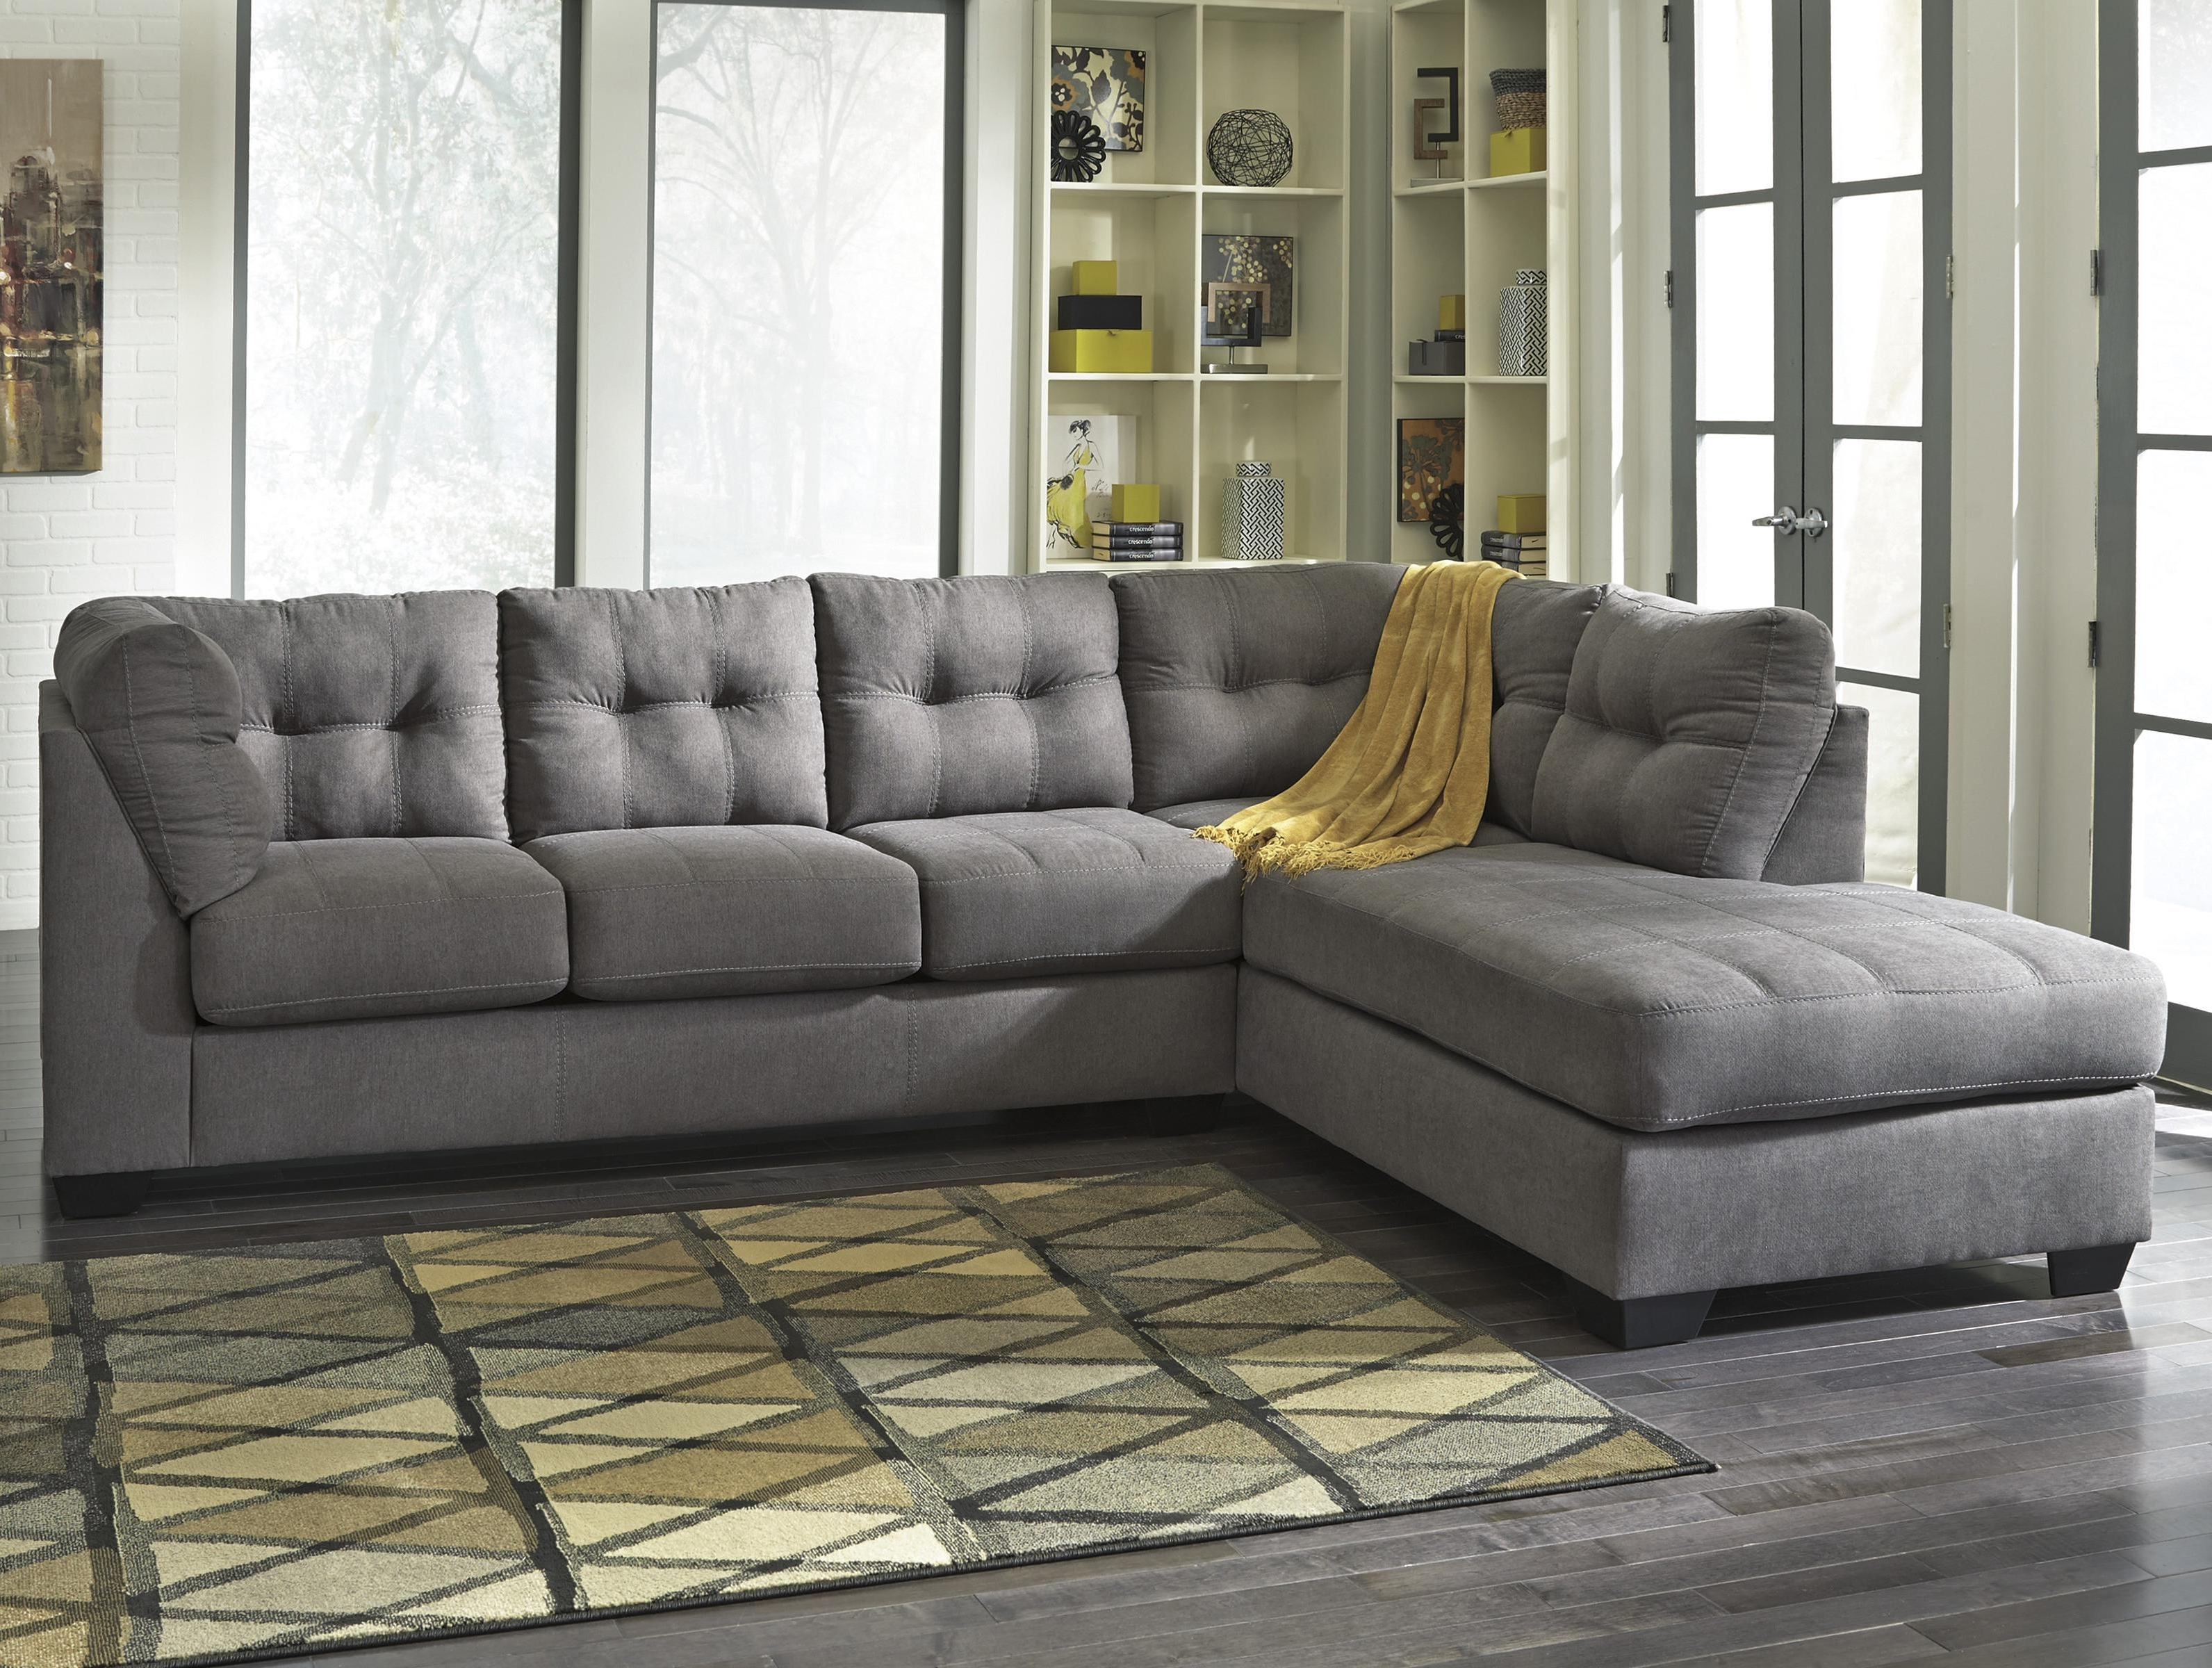 Long Chaise Sofas In Latest Benchcraft Maier – Charcoal 2 Piece Sectional With Left Chaise (View 10 of 20)